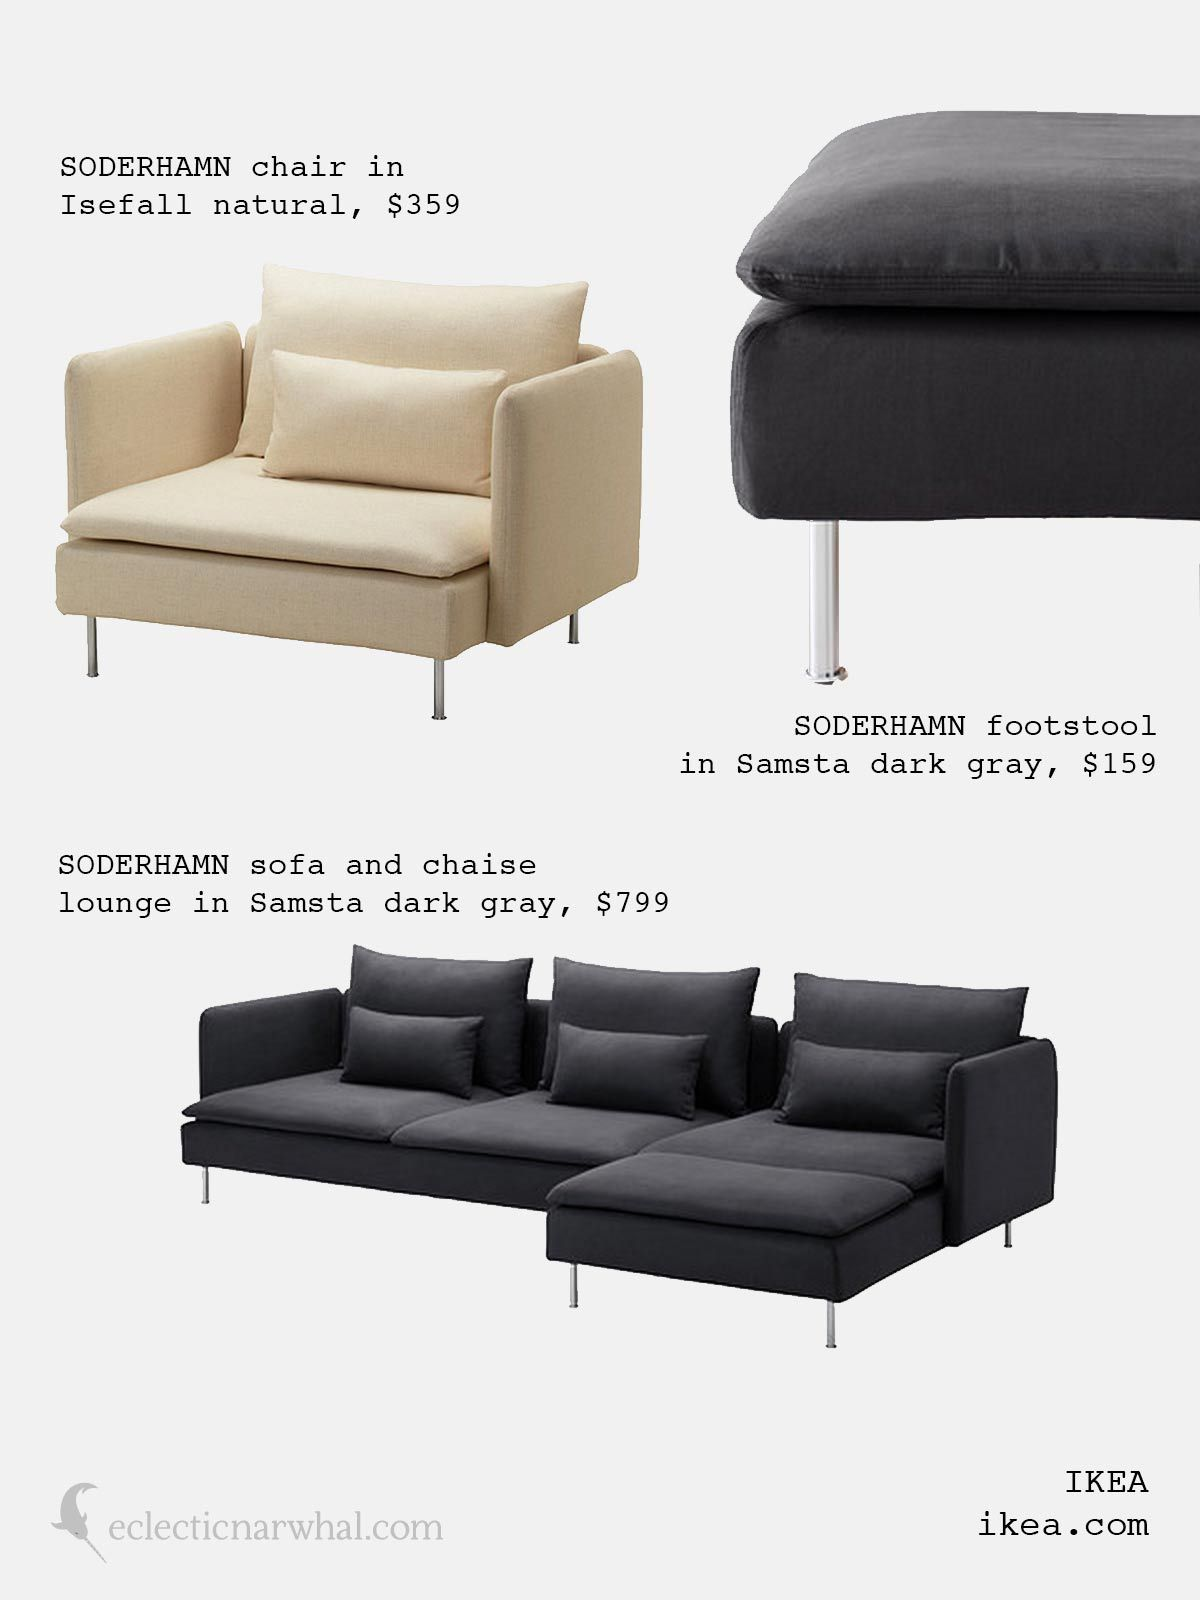 SÖDERHAMN sofa and chaise lounge with footstool and chair from Ikea | Scandinavian Simplicity on eclecticnarwhal : chaise lounge chair ikea - Sectionals, Sofas & Couches